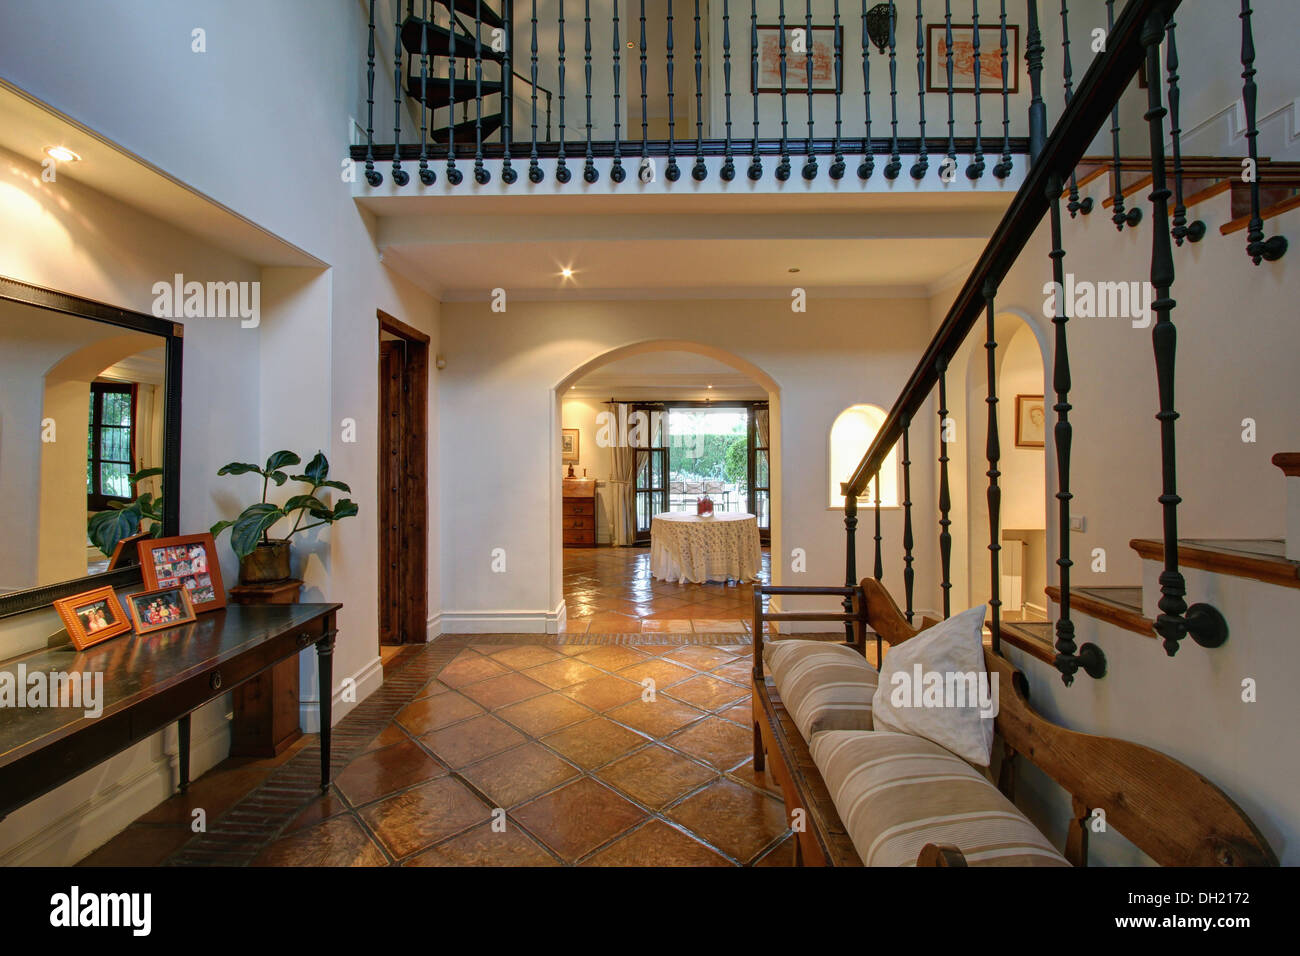 Terracotta floor tiles wooden furniture stock photos amp terracotta - Wooden Settle And Console Table In Large Hall With Terracotta Tiled Floor In Spanish Villa